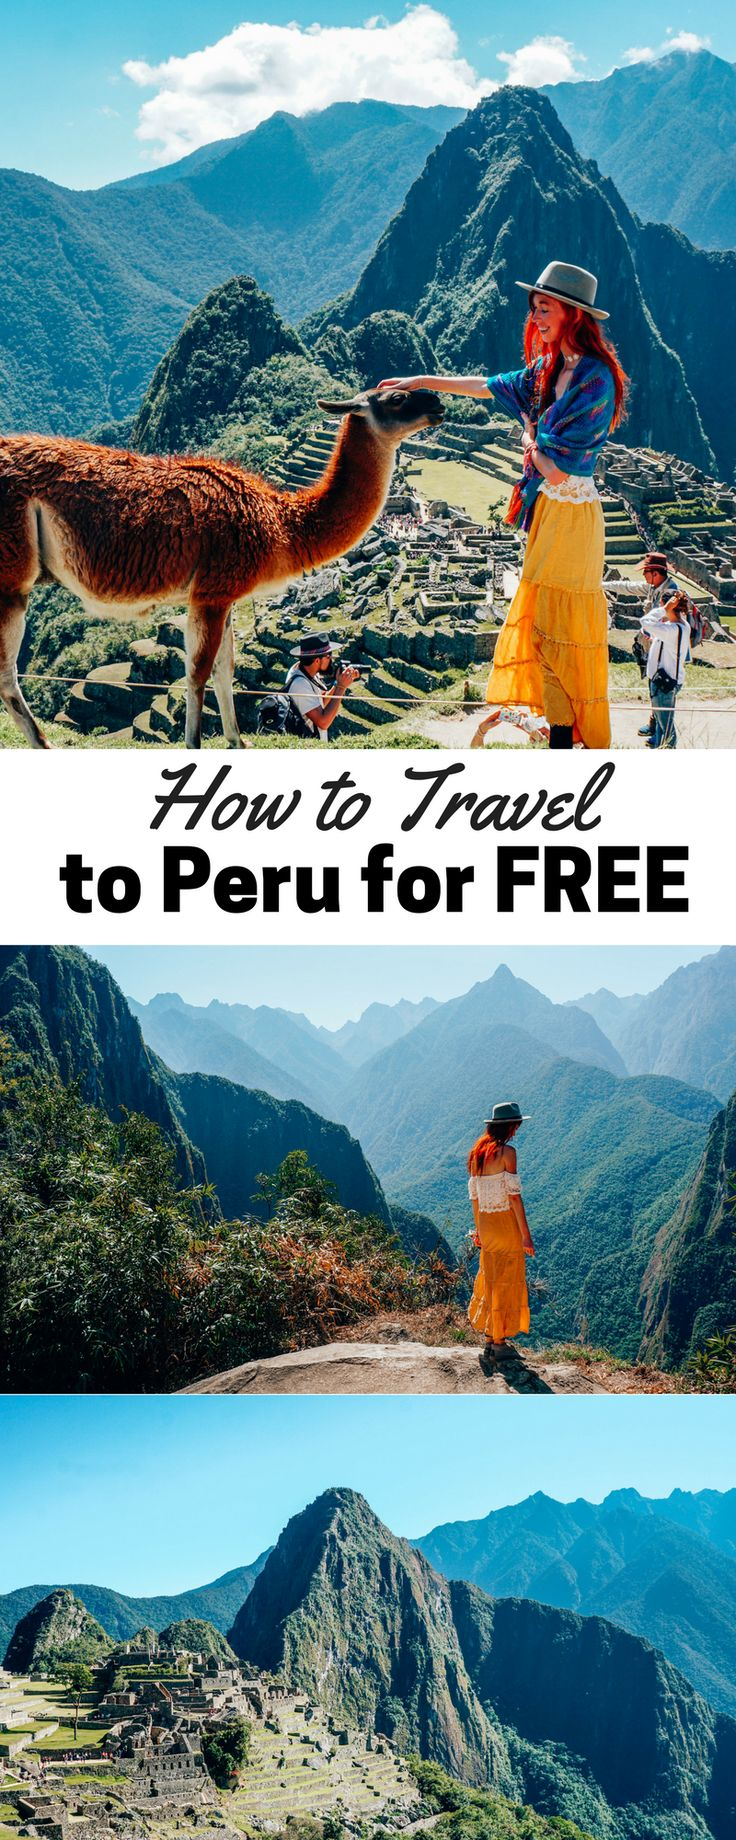 How to Travel to Peru for Free